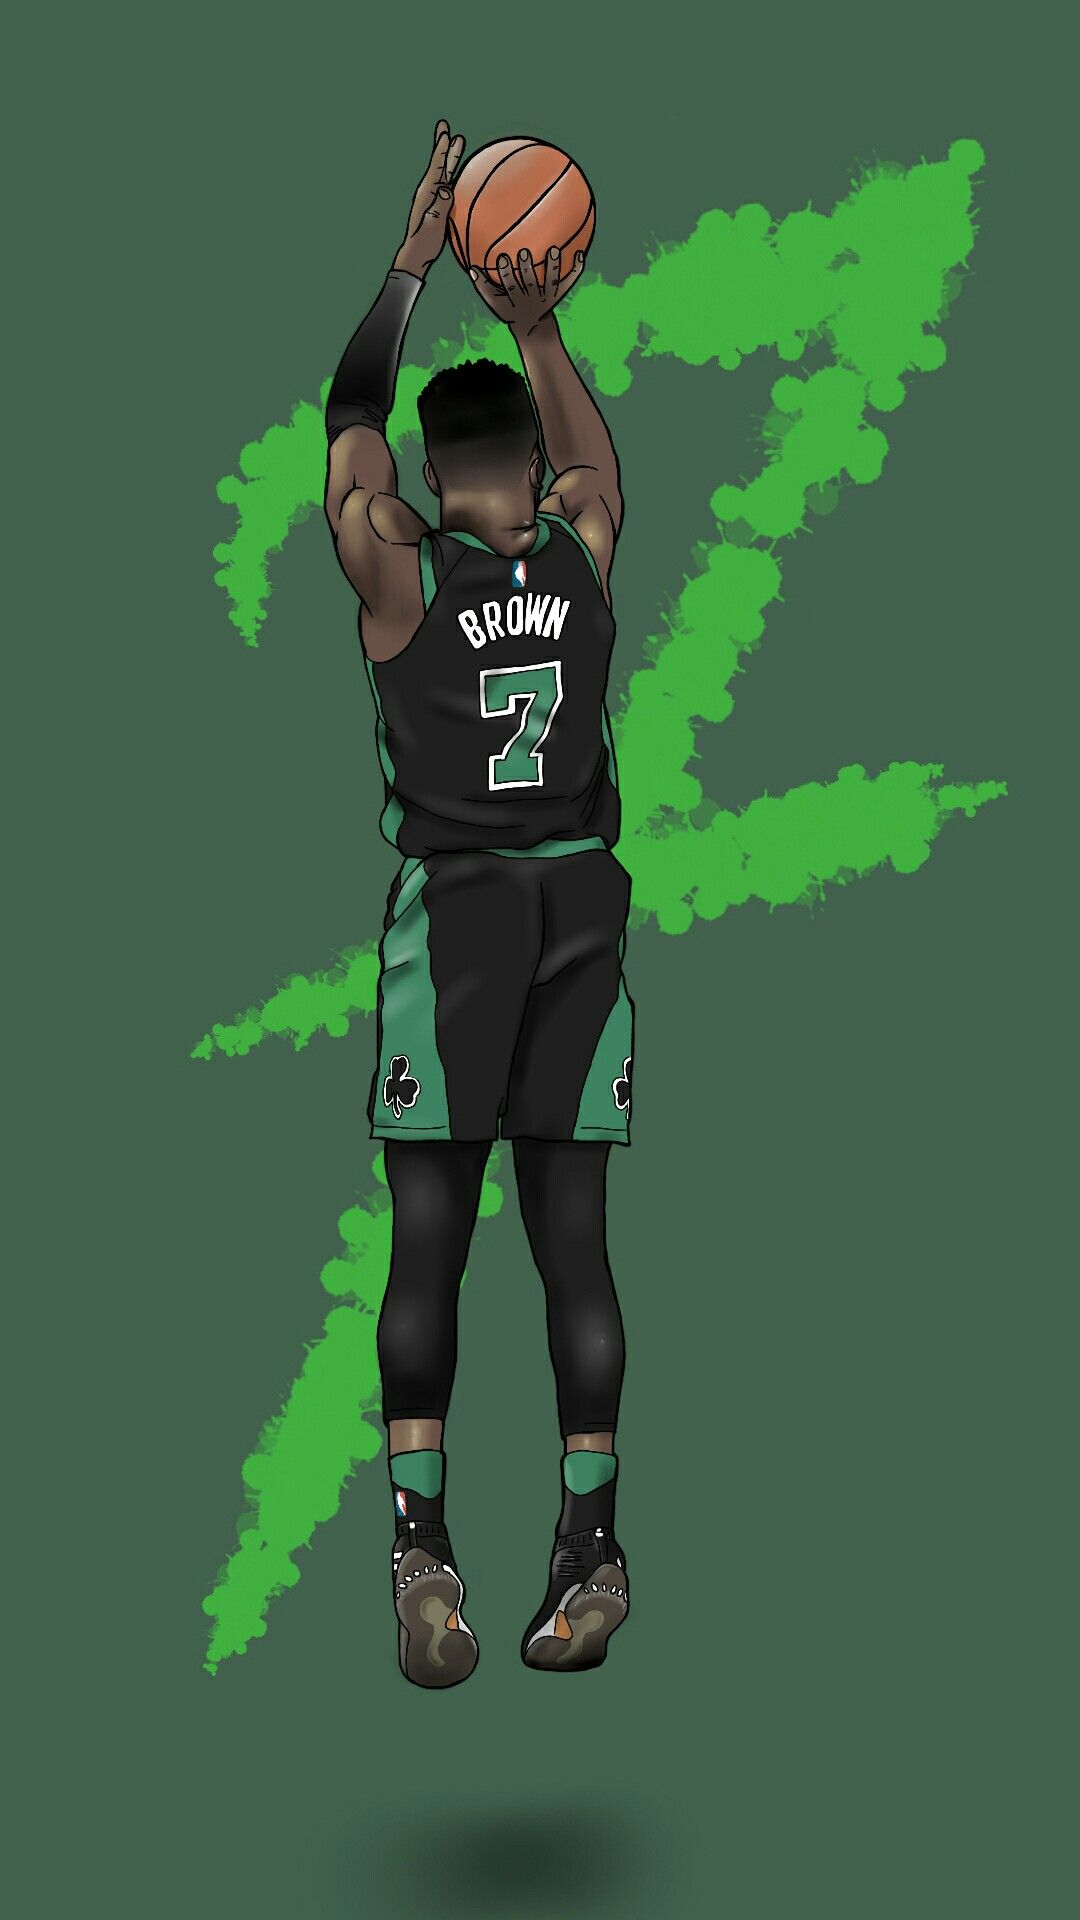 Jaylen Brown from Boston Celtics Phone Wallpaper by Socent, visit the Instagram @socentism